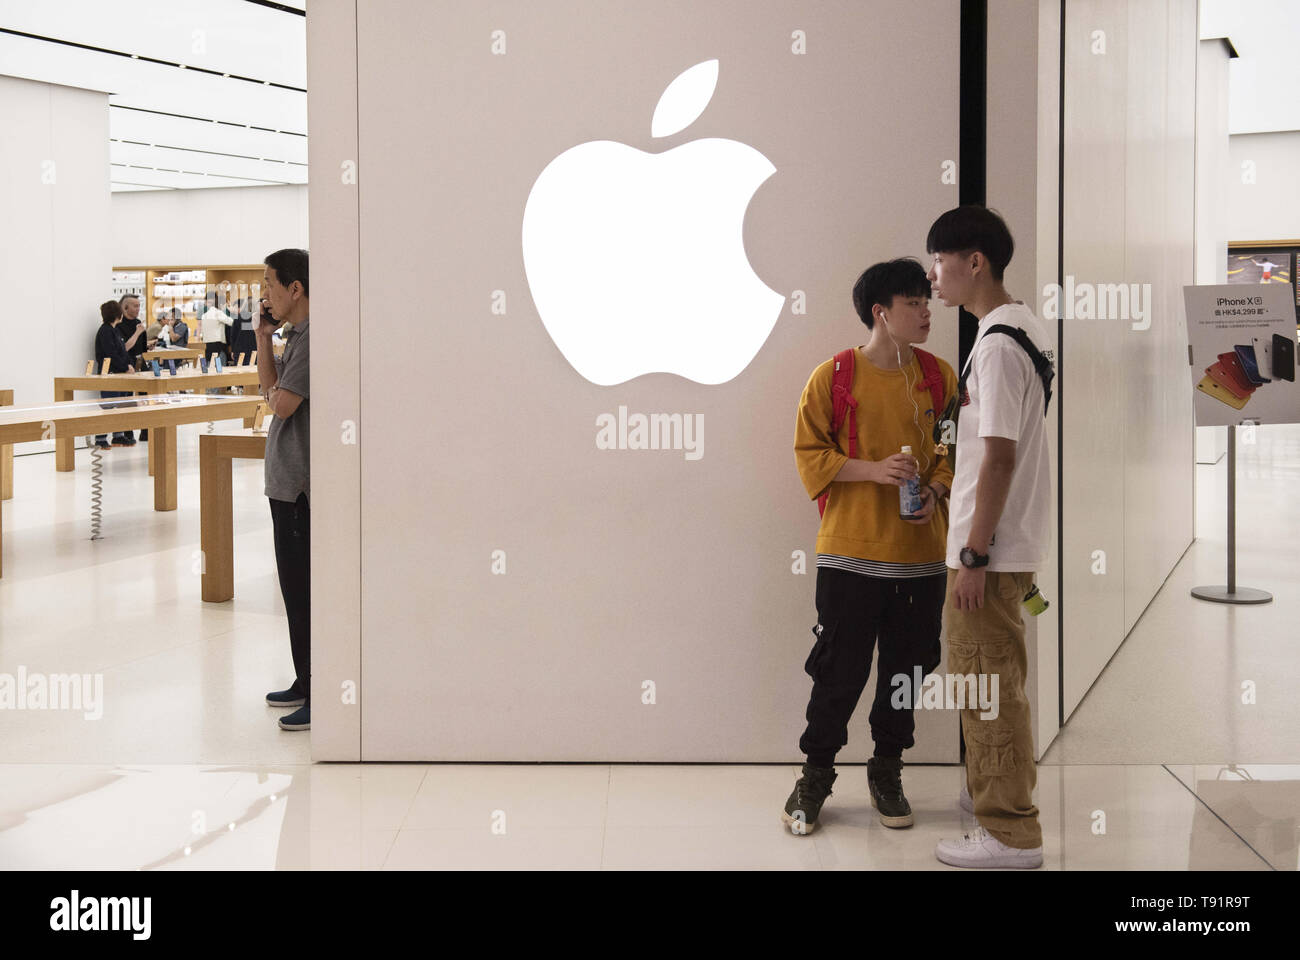 Hong Kong, China. 9th May, 2019. Teenagers seen standing outside of American multinational technology company Apple store in Hong Kong. Credit: Budrul Chukrut/SOPA Images/ZUMA Wire/Alamy Live News - Stock Image